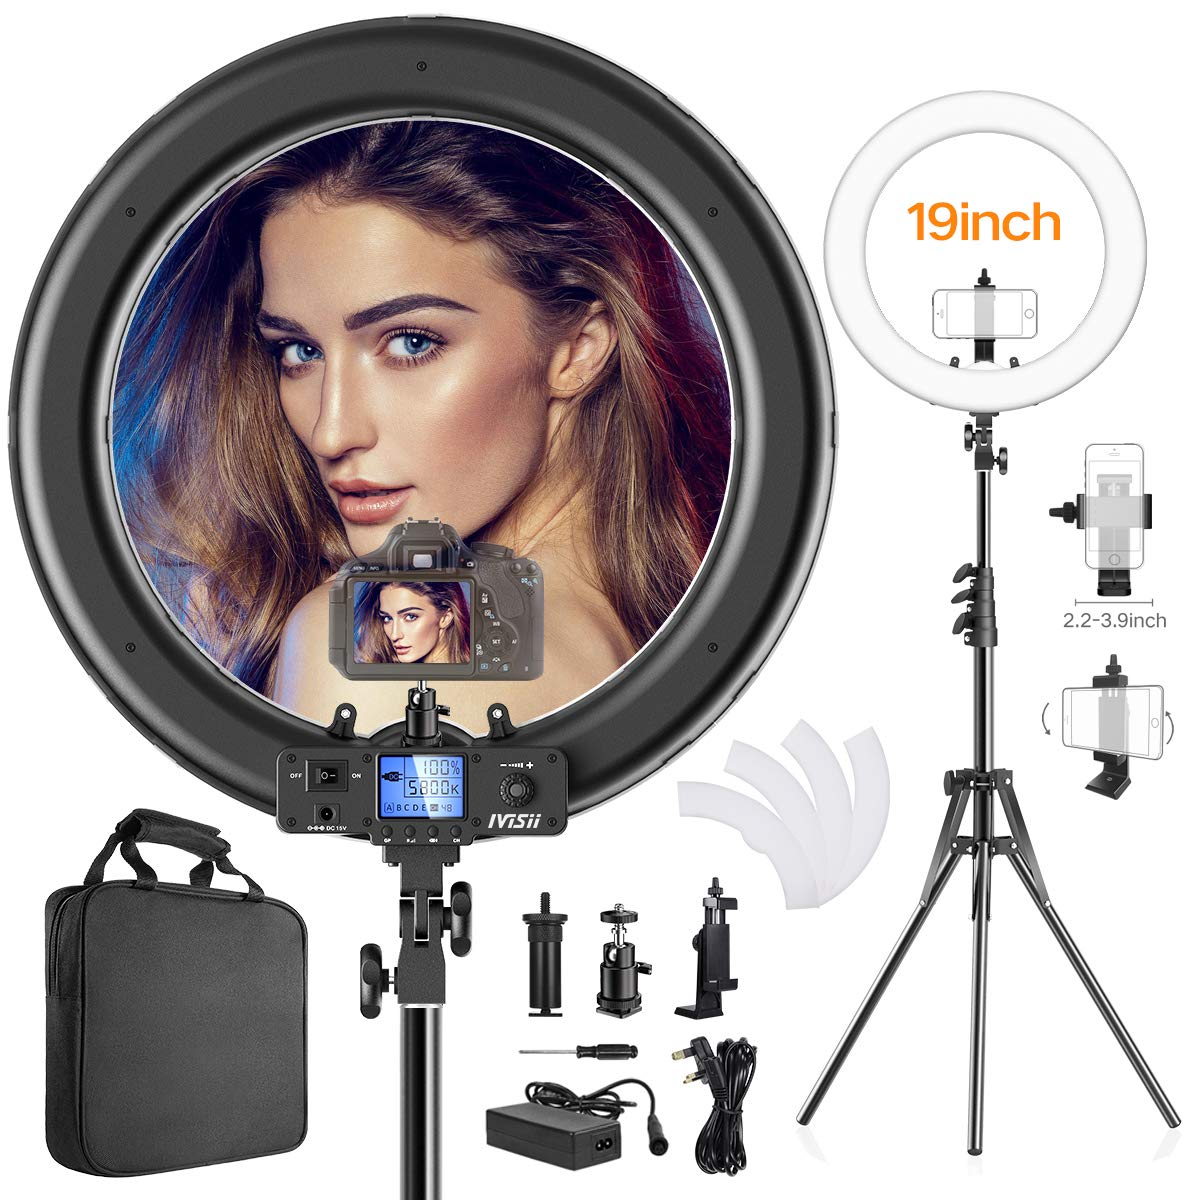 Review of the 19″ IVISII LED Ring Light from CAIYING-EU